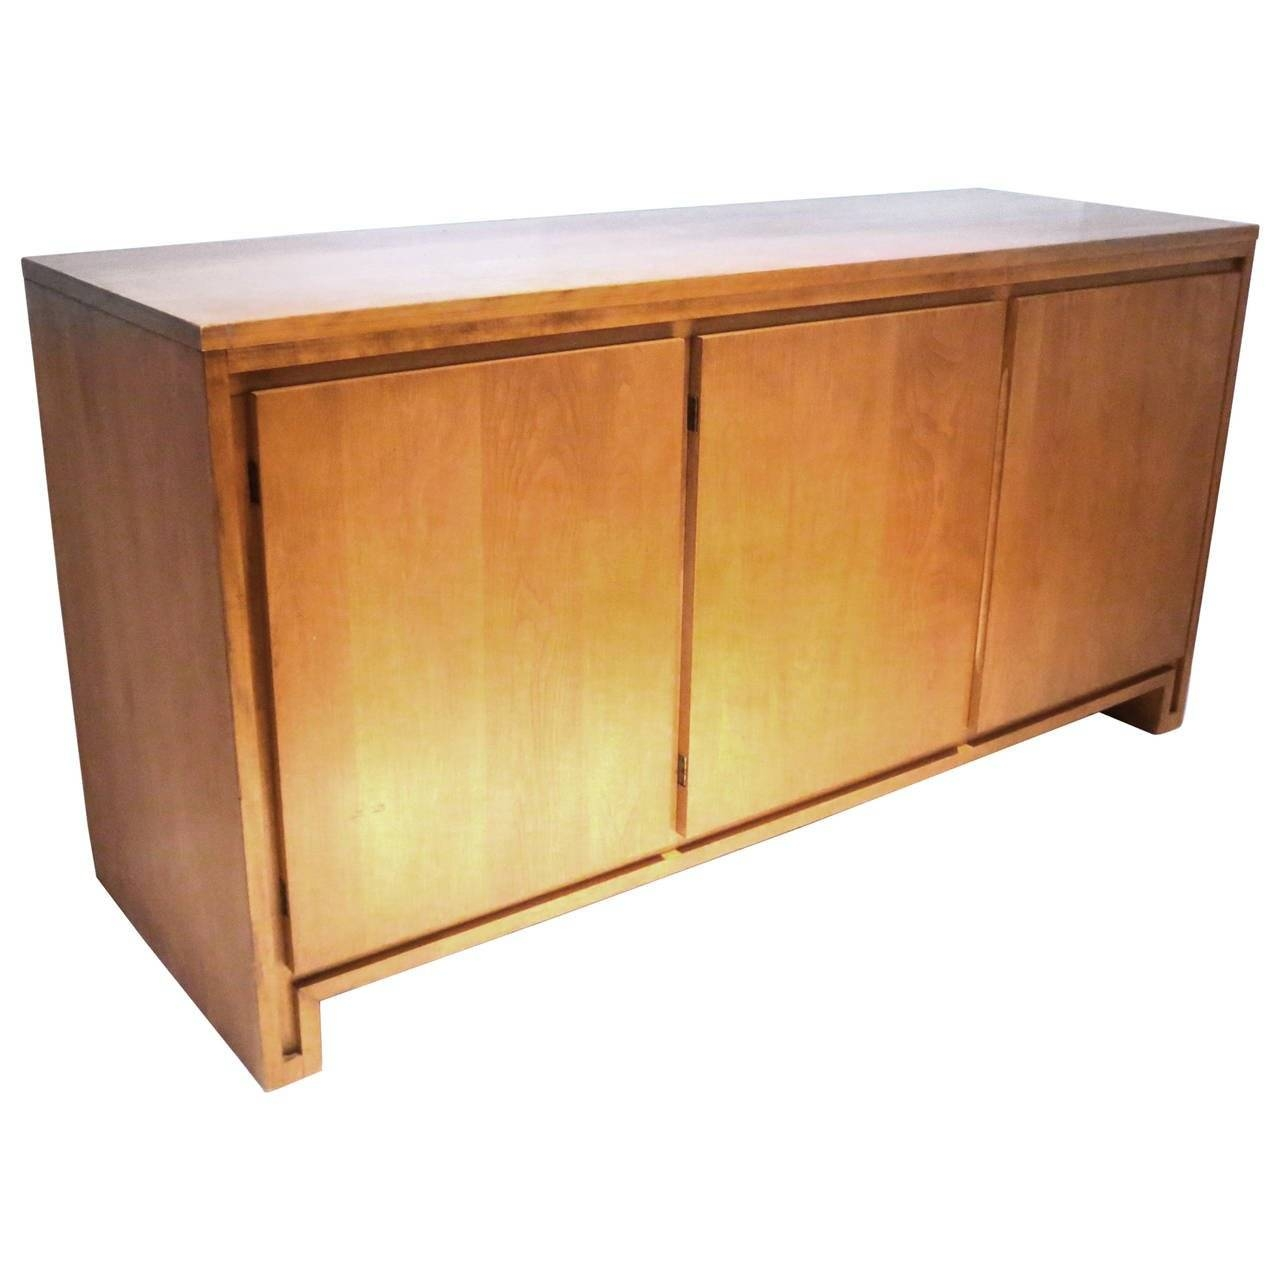 1950s Solid Maple Sideboard Or Credenza Designrussel Wright Intended For Maple Sideboards (View 5 of 15)